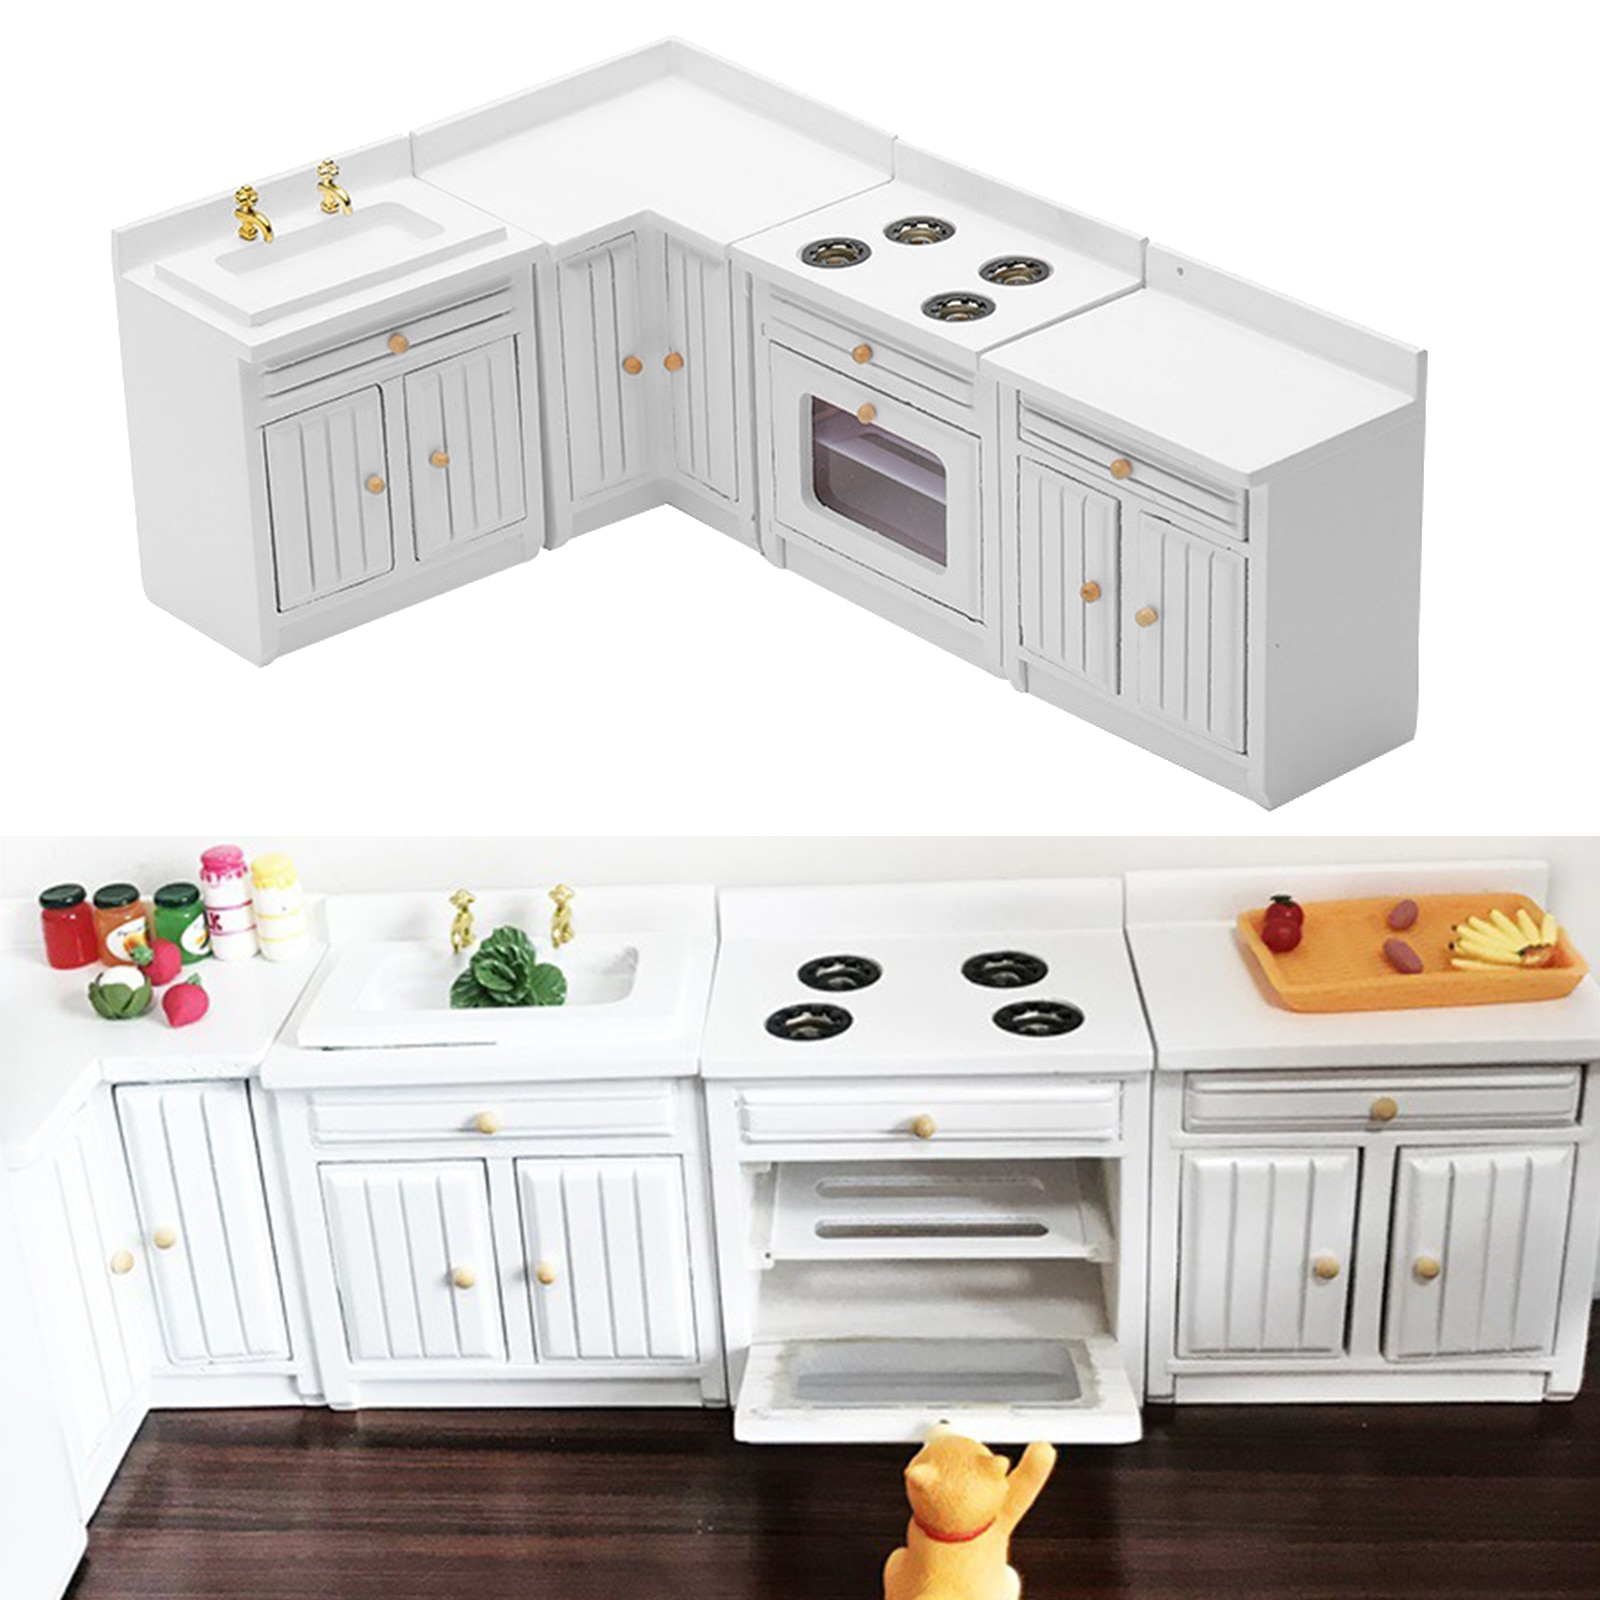 4Pcs 1:12 Dollhouse Miniature Furniture Wooden Kitchen Cabinet Set, Dollhouse Decoration Accessories, Freely Combined